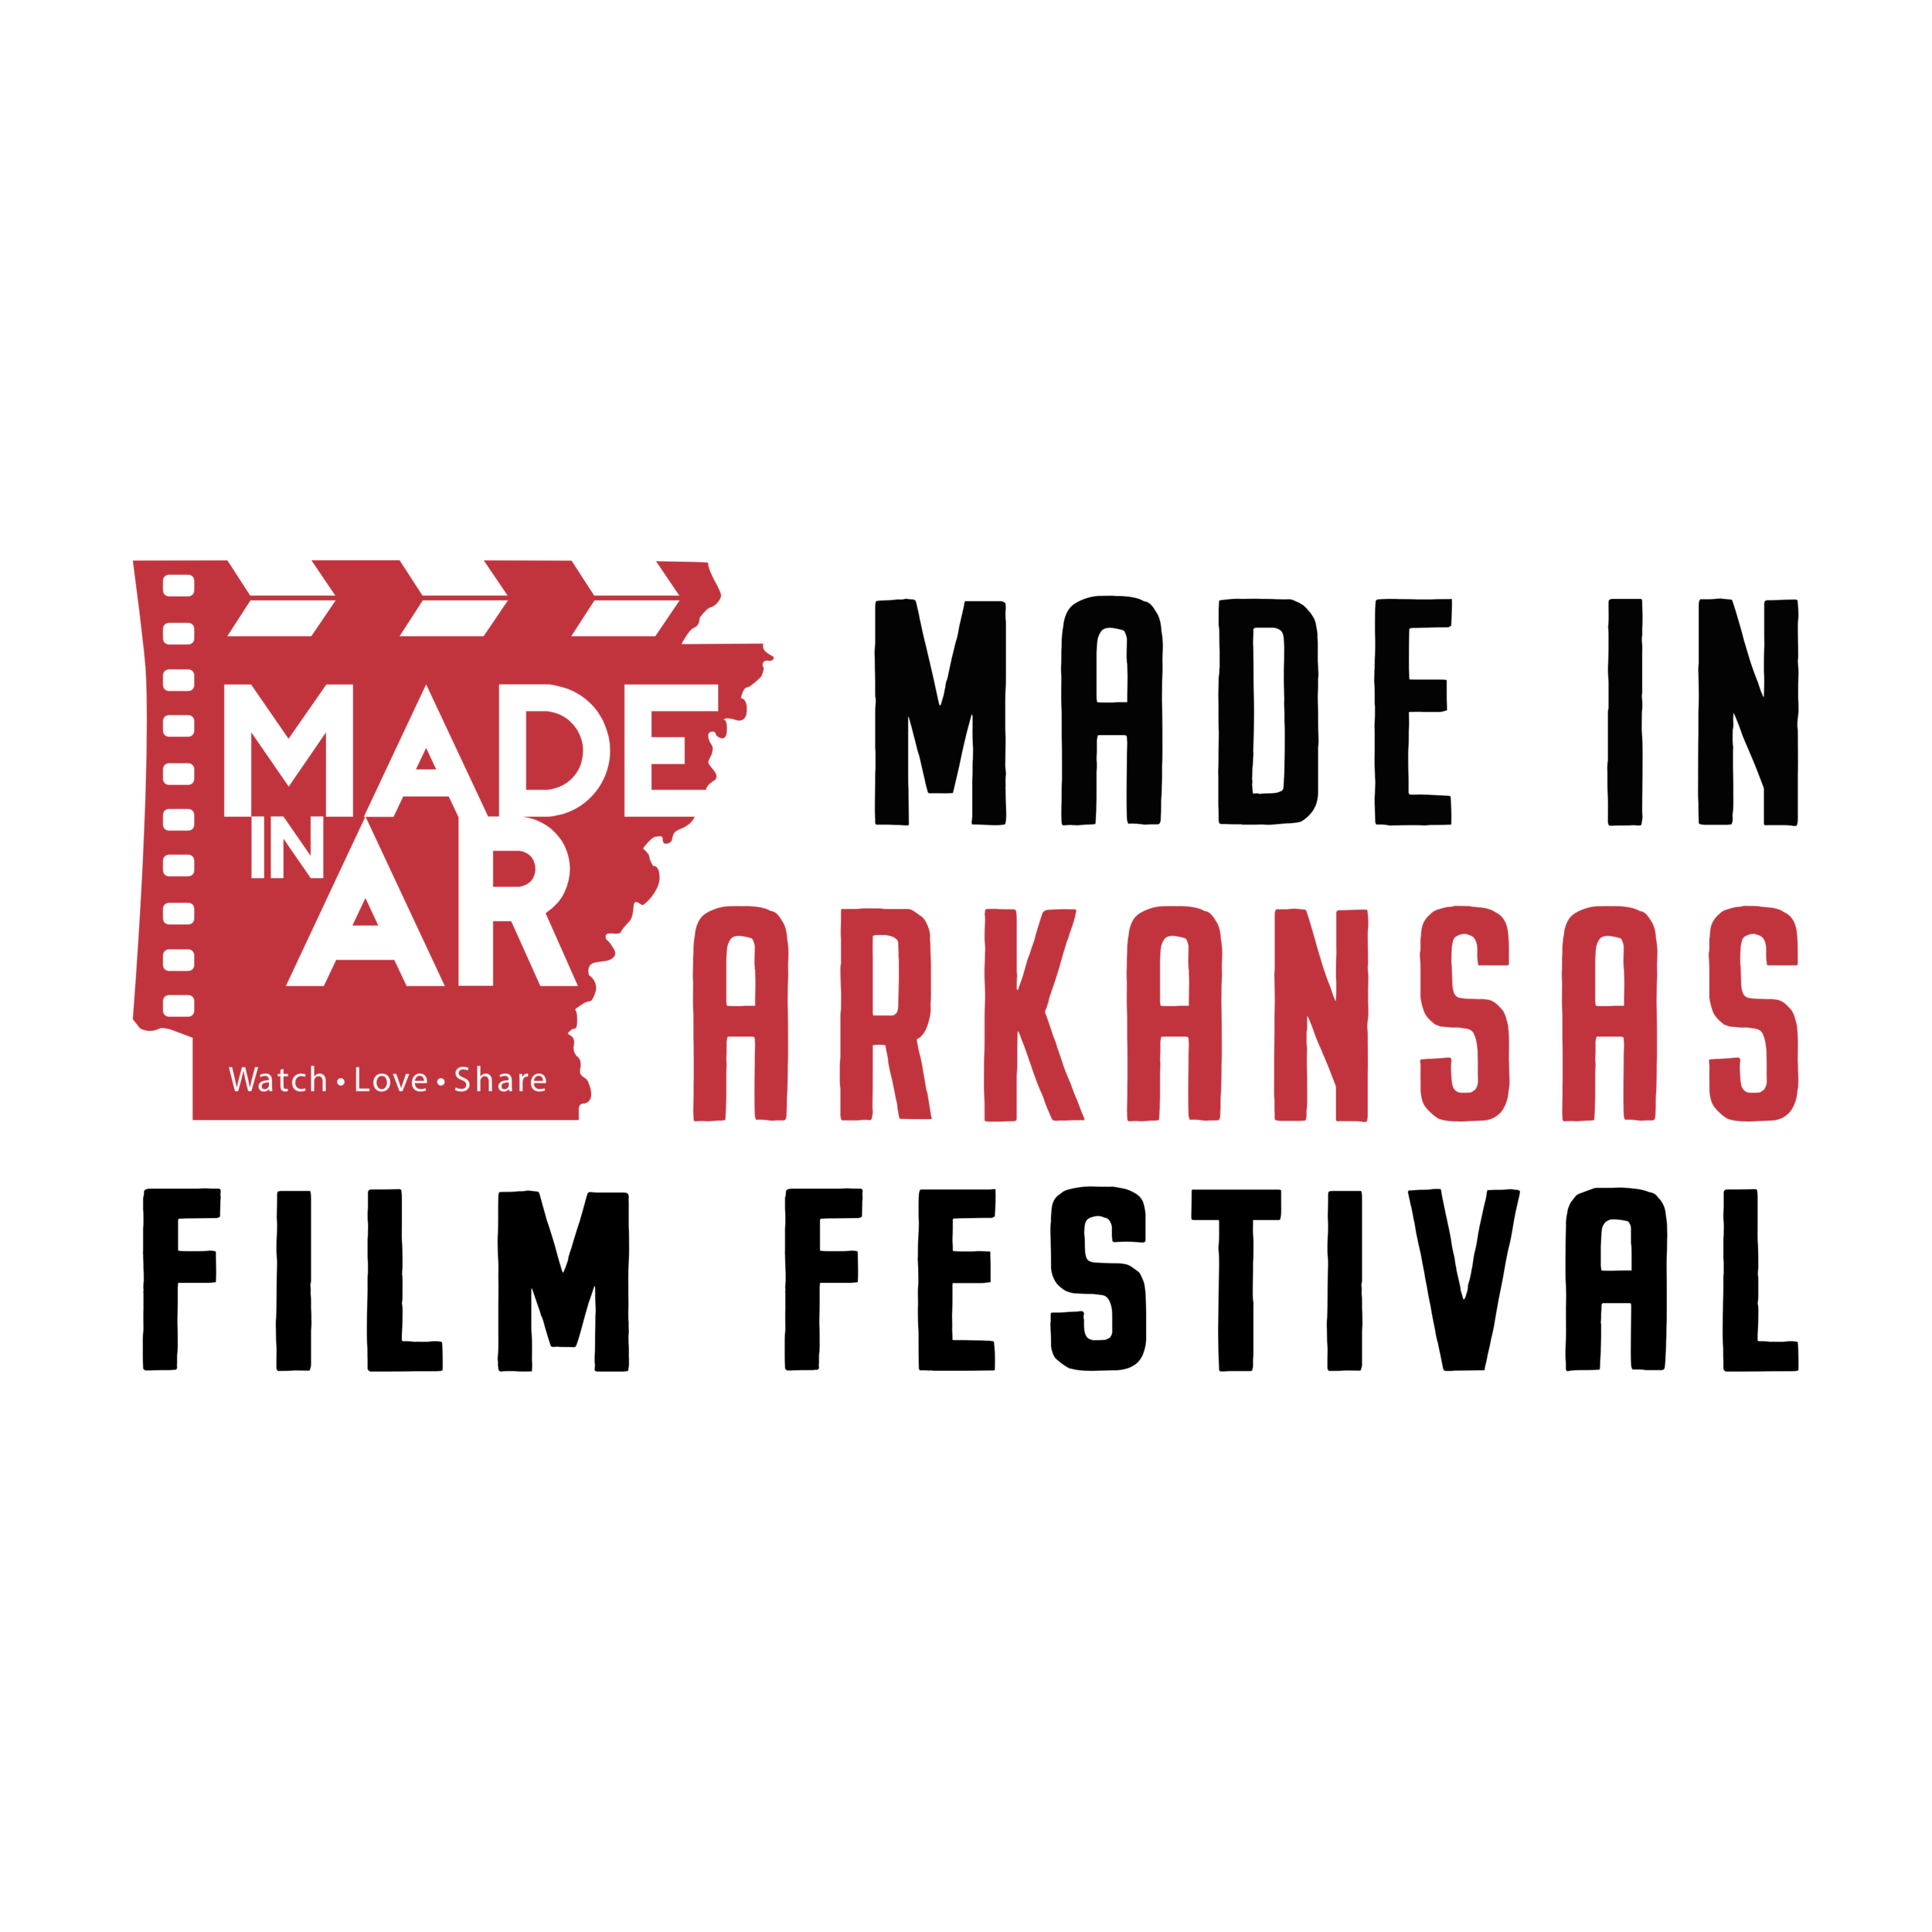 Made in Arkansas Film Festival logo